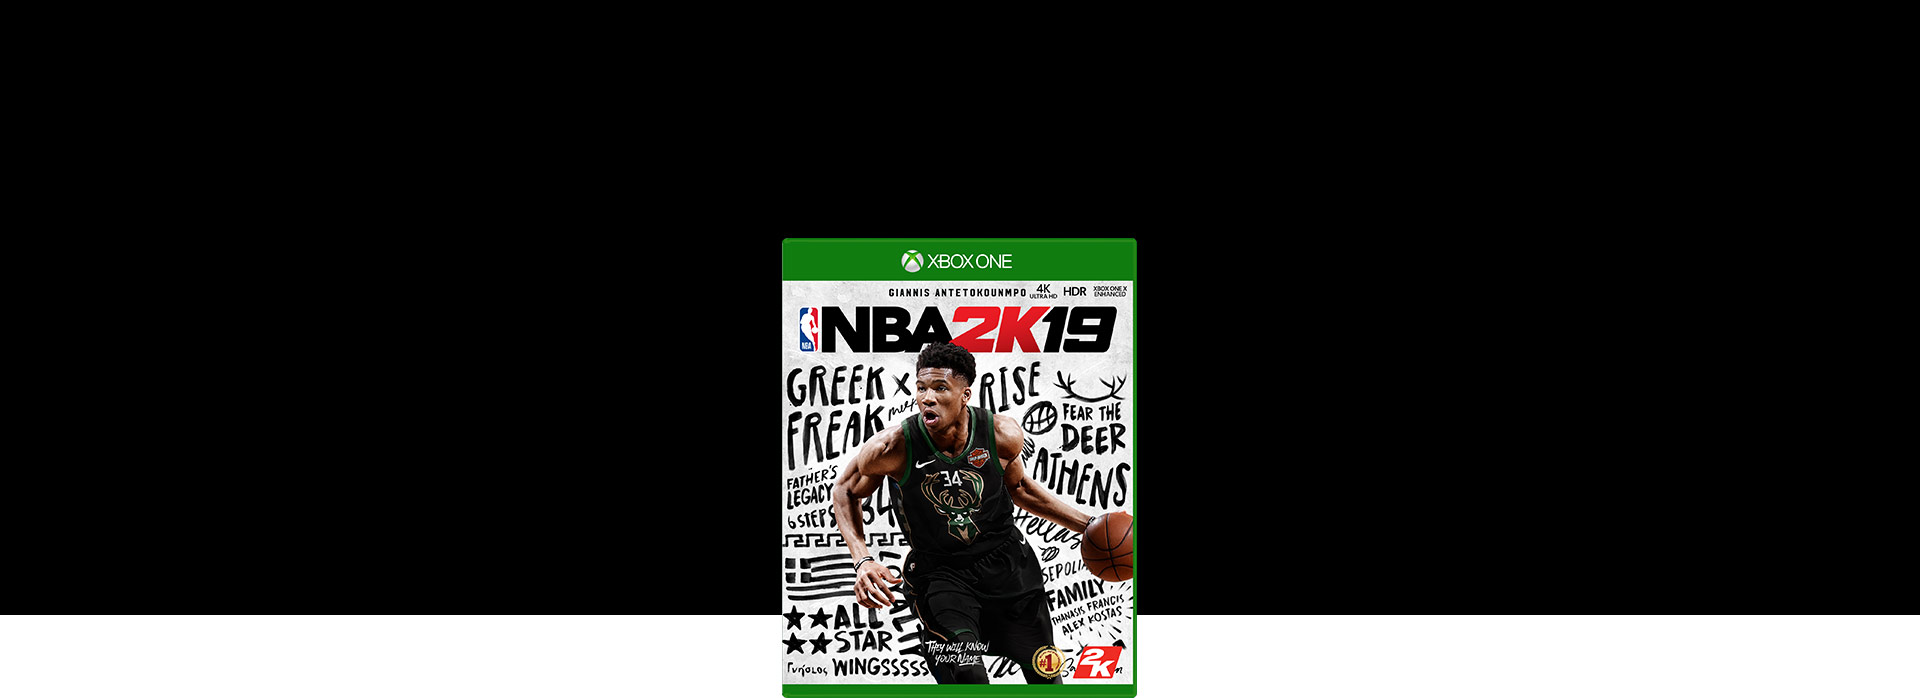 NBA 2K19-coverbillede